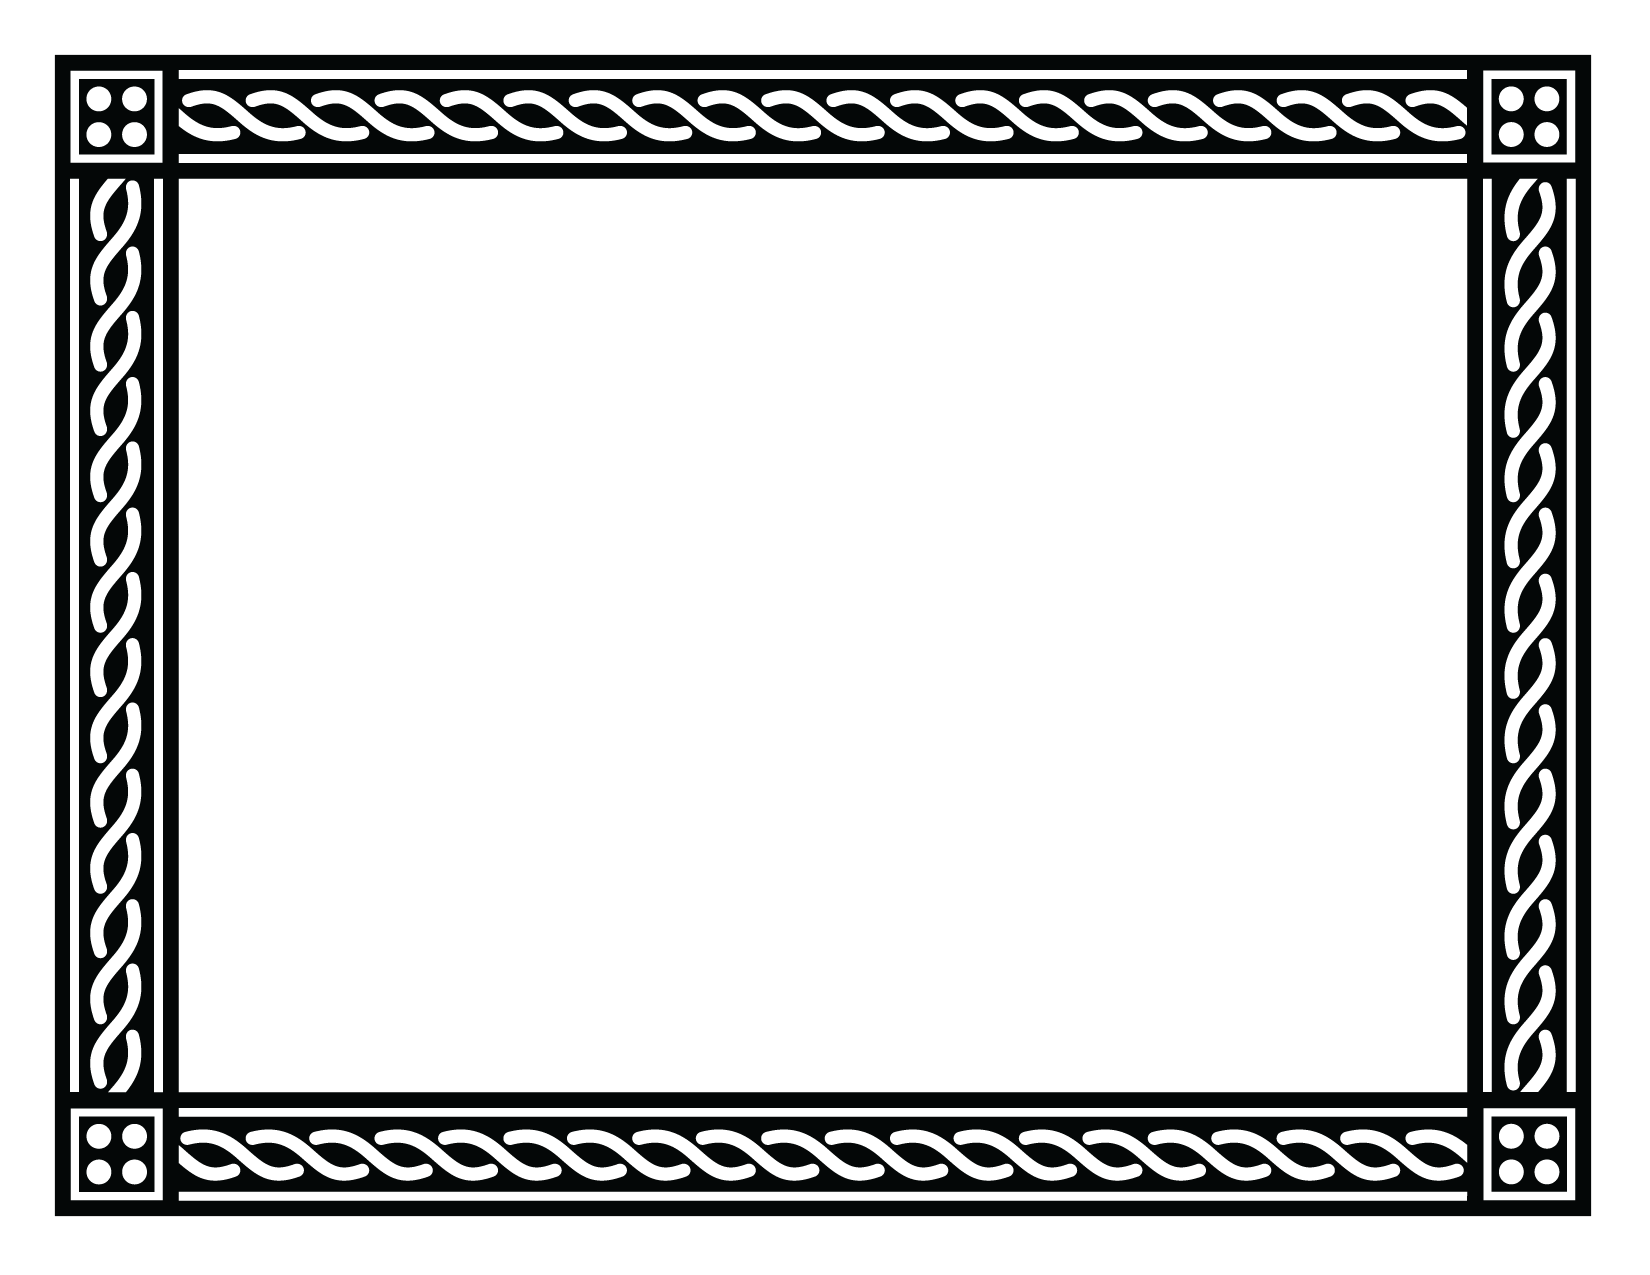 Black Frame PNG Images Transparent Free Download.